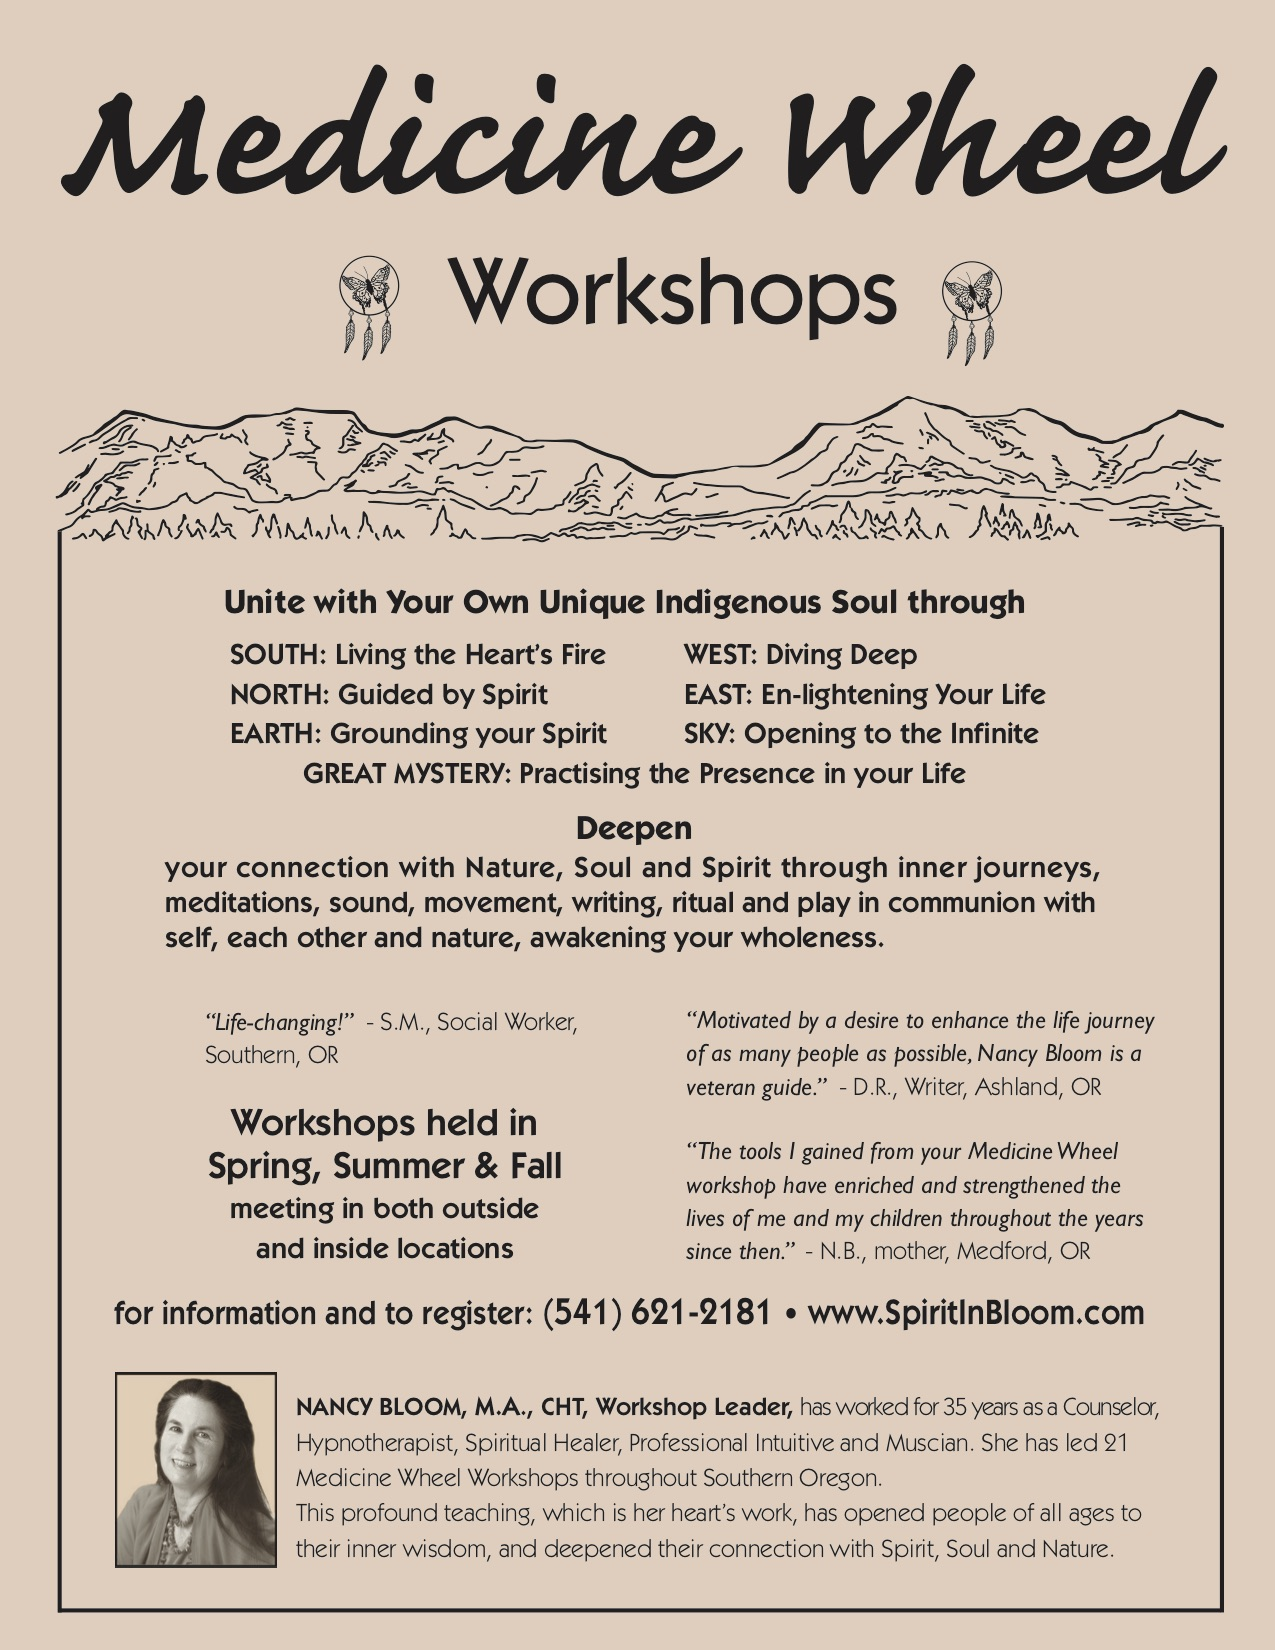 Medicine Wheel Workshops